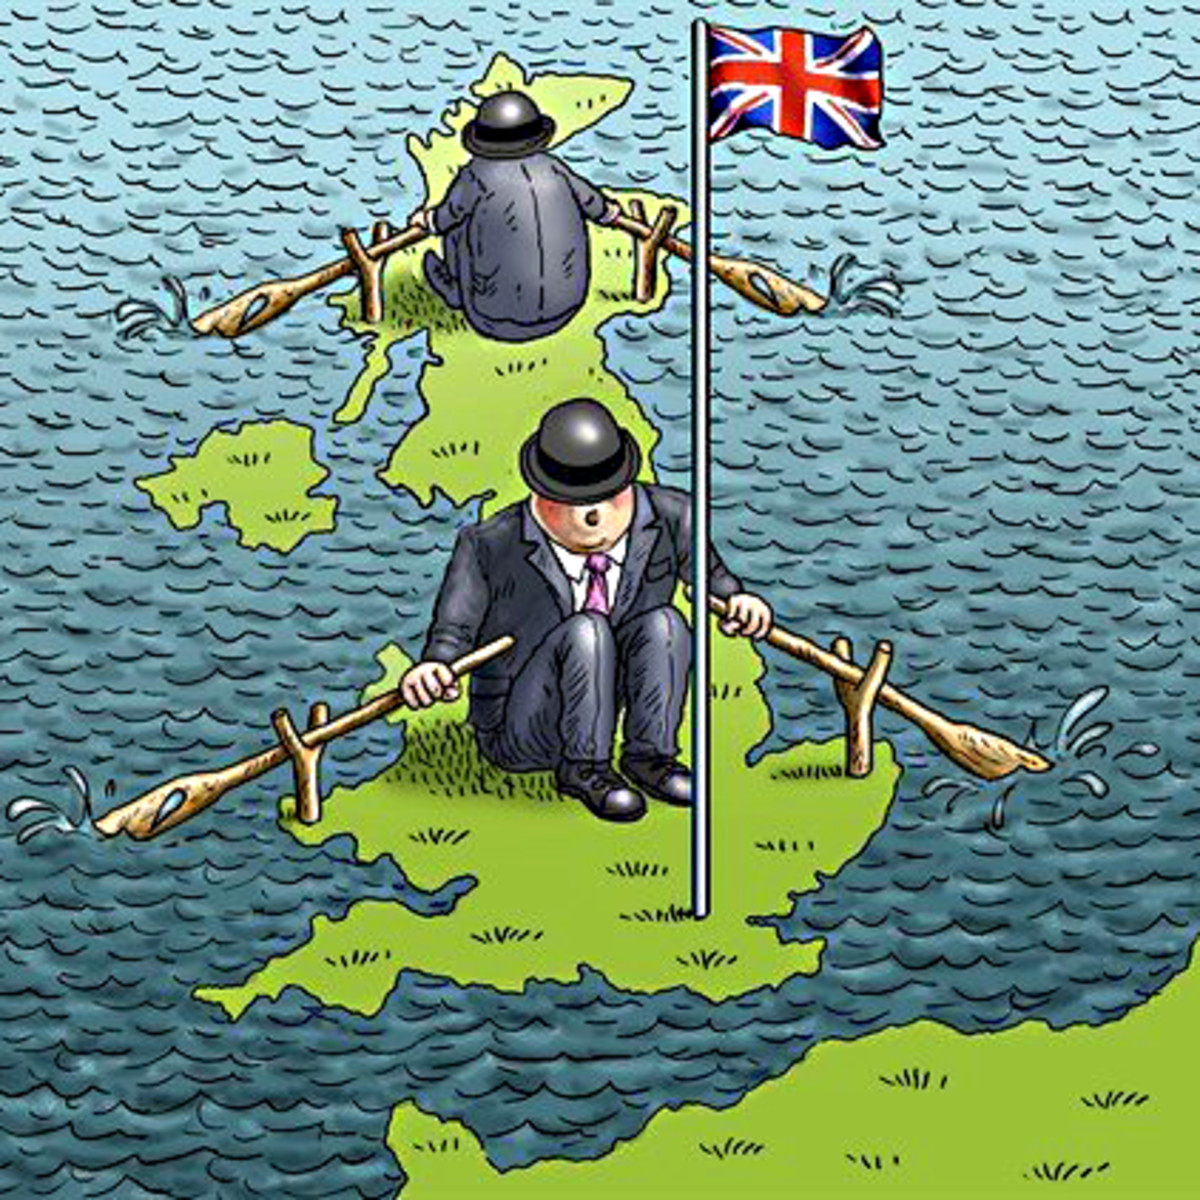 Brexit: The Exit of the United Kingdom from the European Union